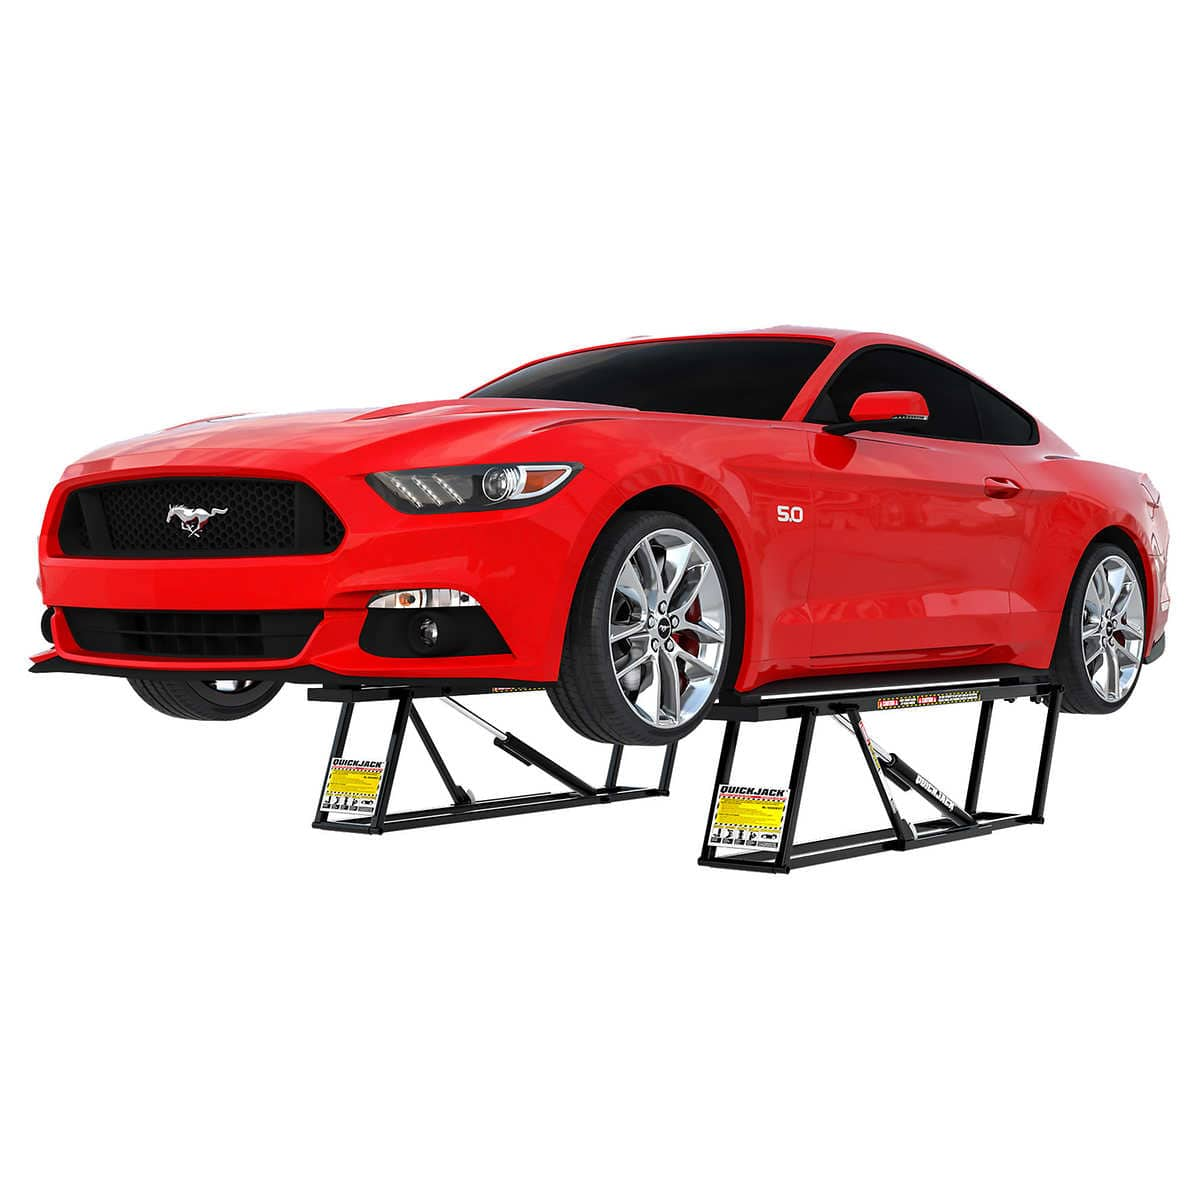 Costco: QuickJack 5,000-LB Capacity Portable Car Lift, $999 FS